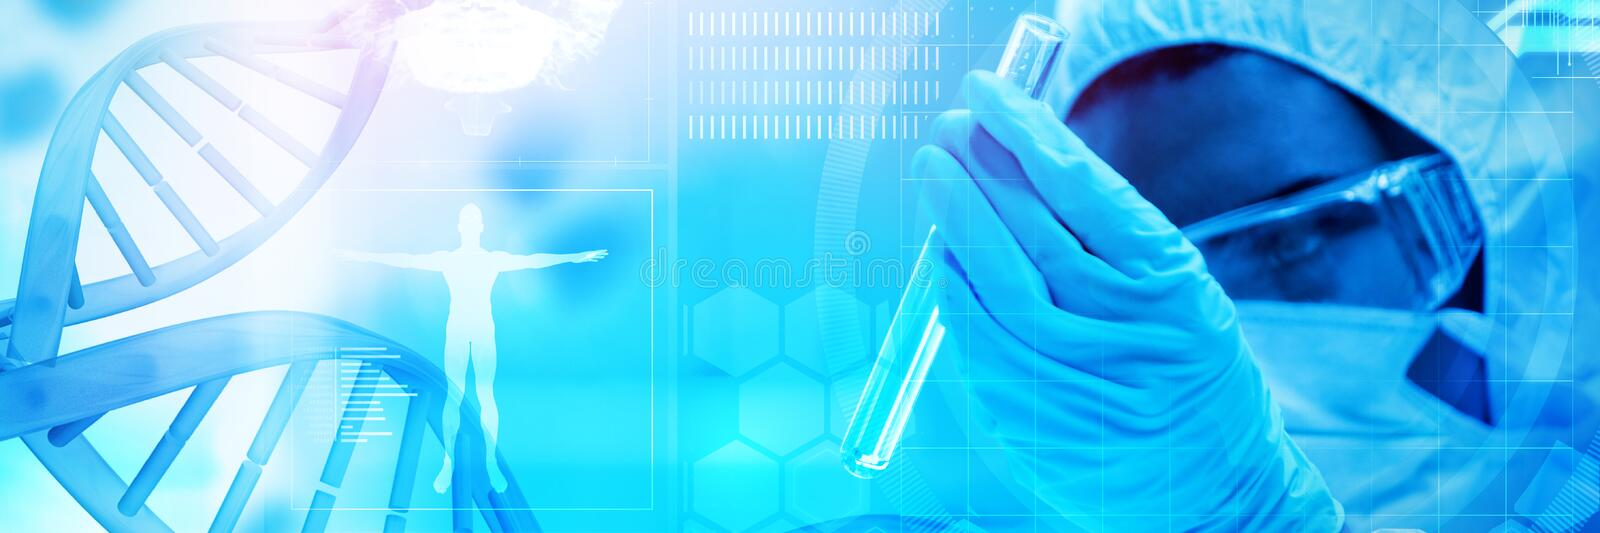 Composite image of blue dna helix with medical background. Blue dna helix with medical background against protected scientist looking at a dangerous liquid in stock photography